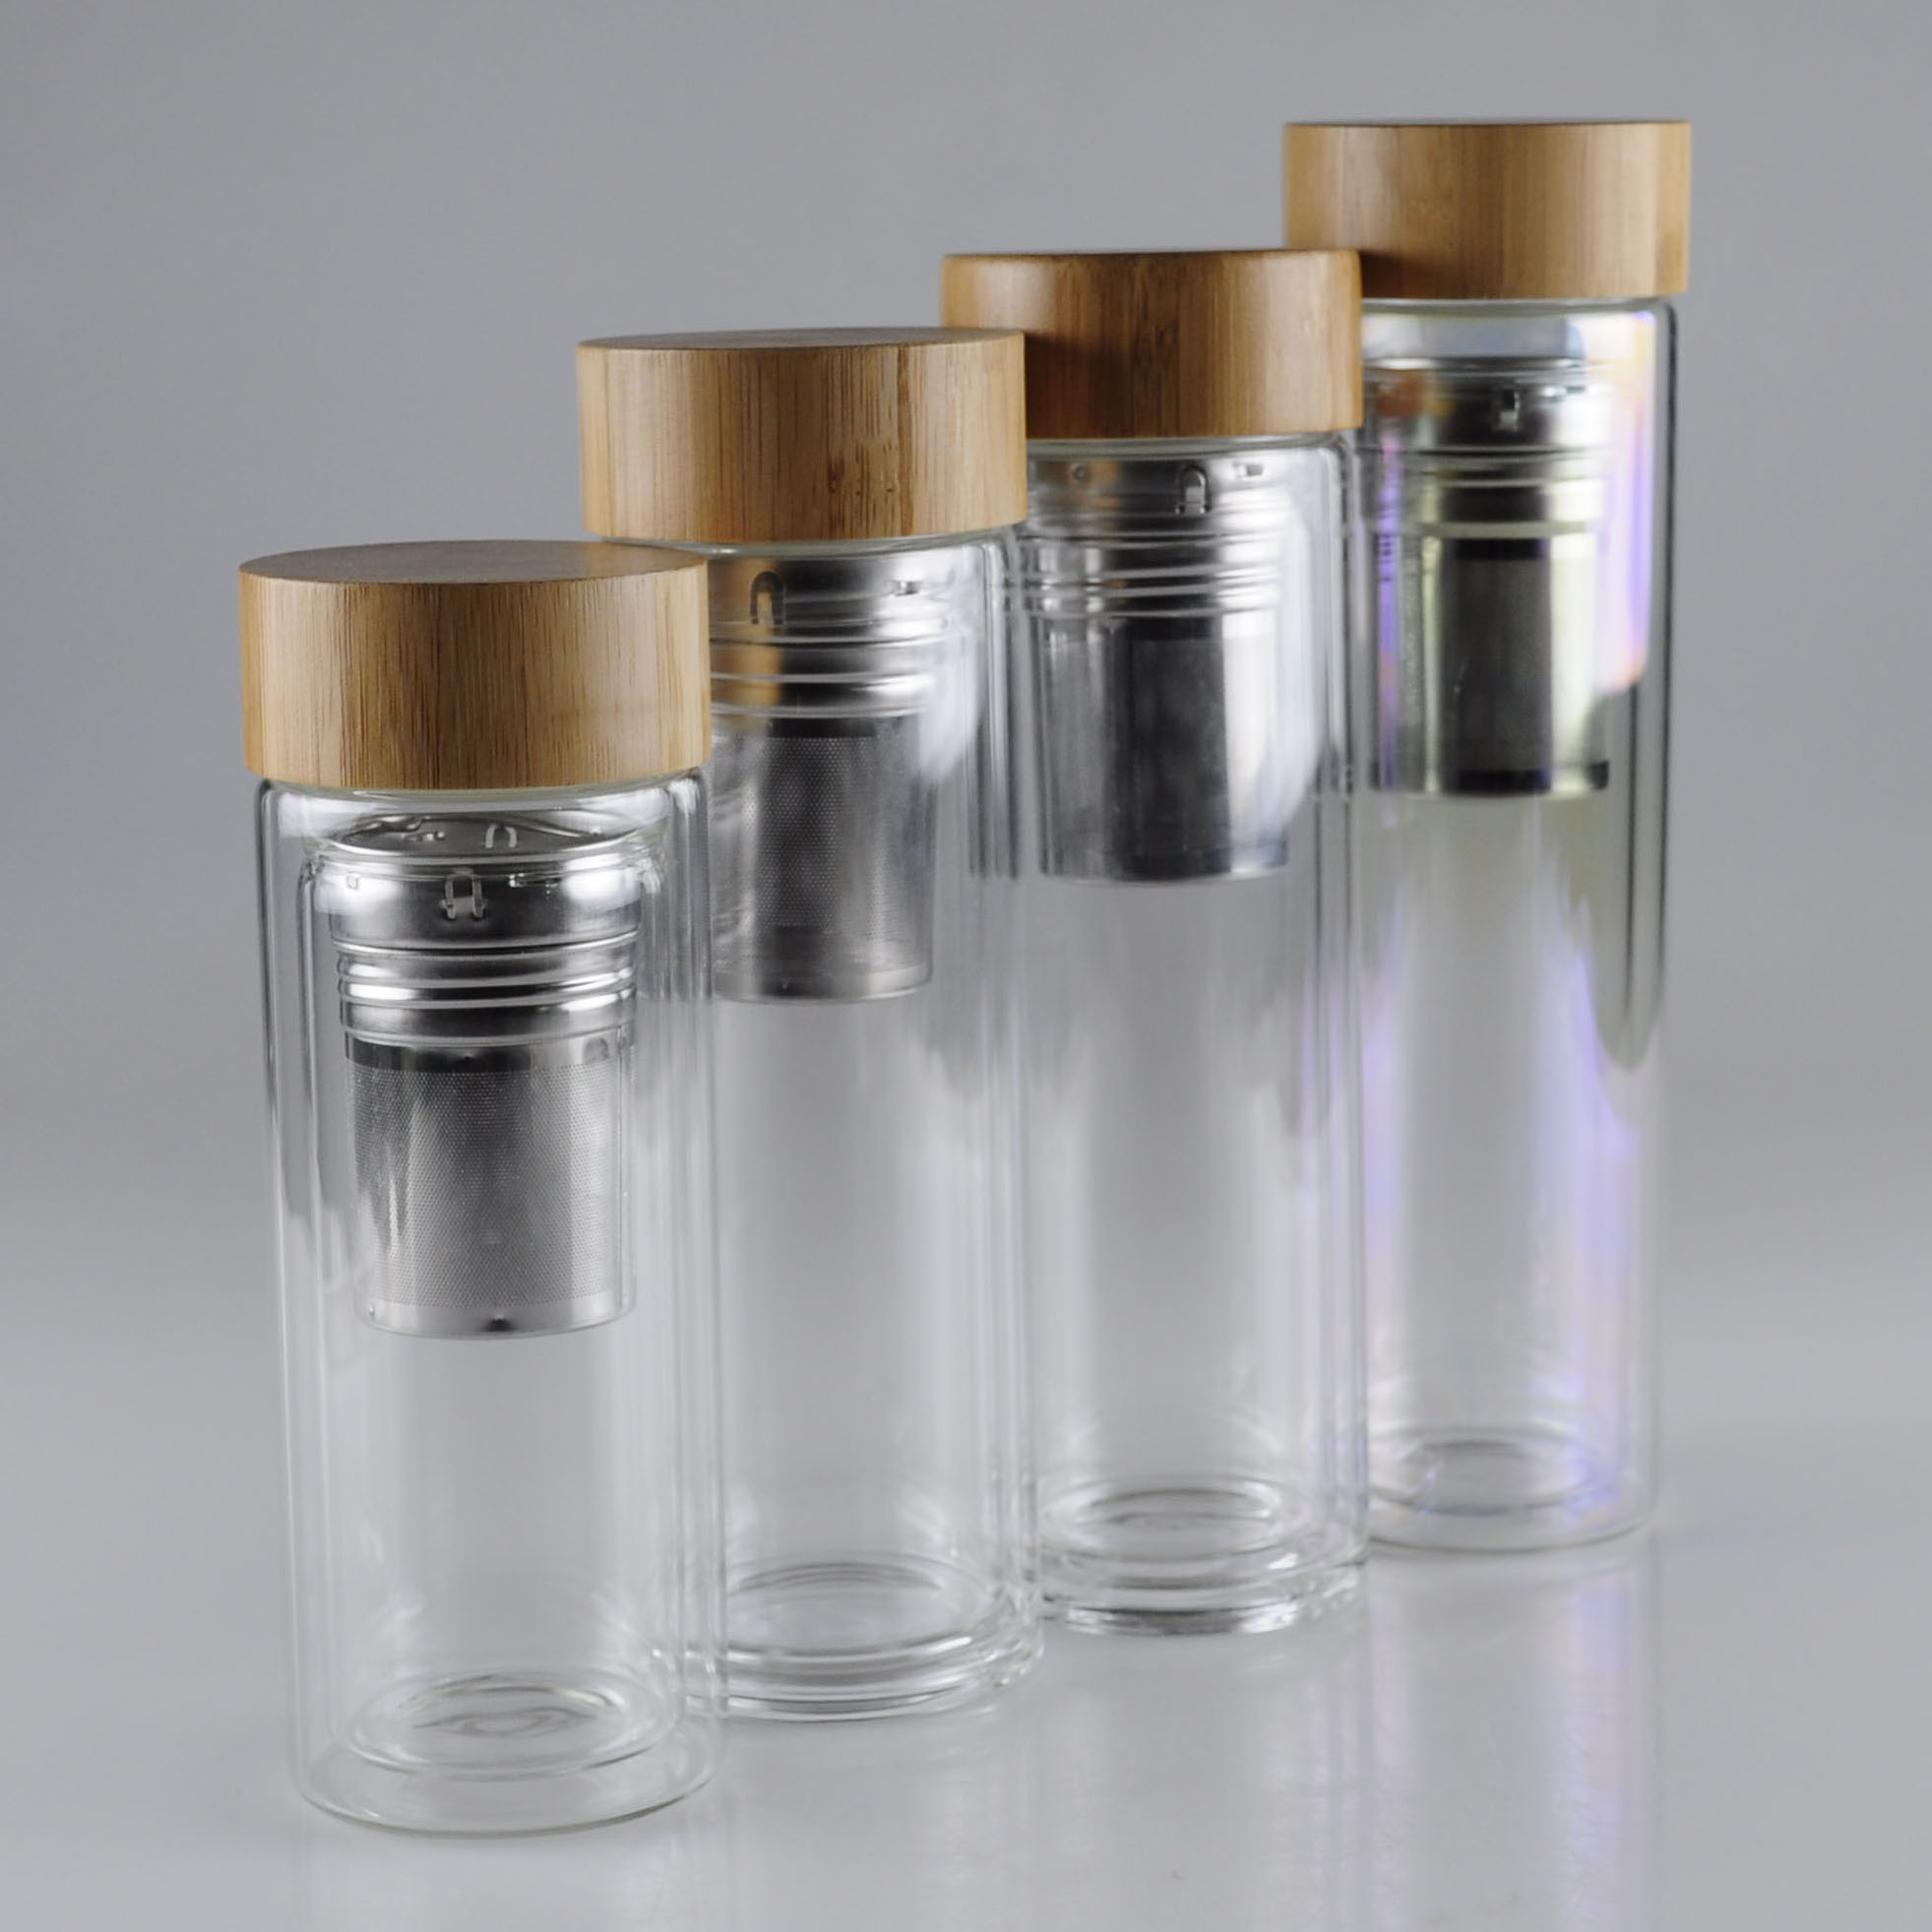 350ml-400ml-450ml-500ml-tea-strainer-glass-water-bottle-with-bamboo-lid (1)